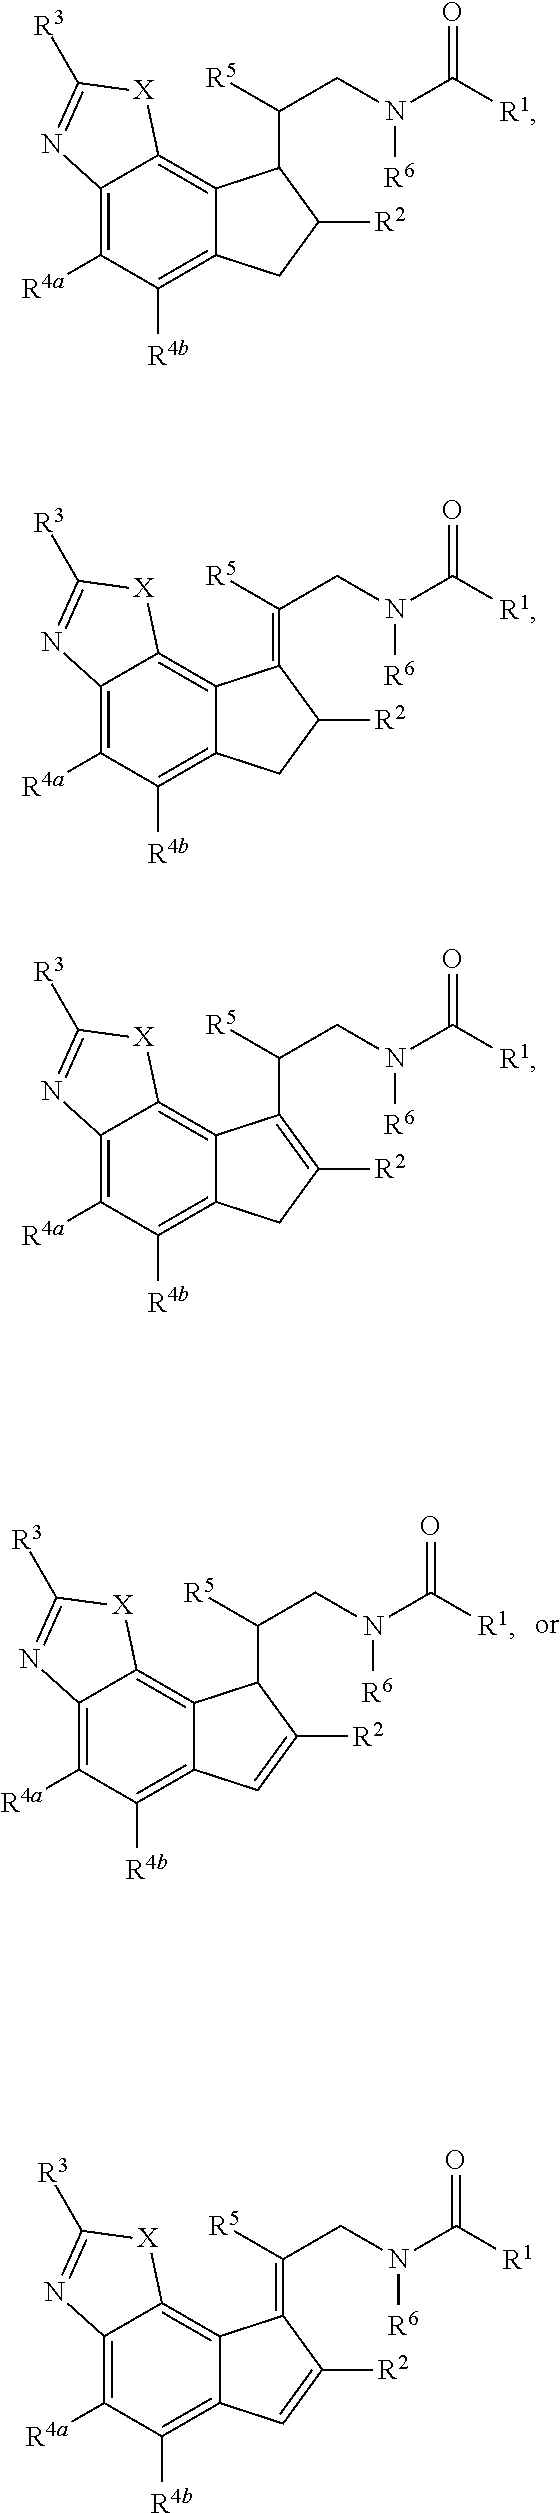 US20110196003A1 - Tricyclic compound and pharmaceutical use